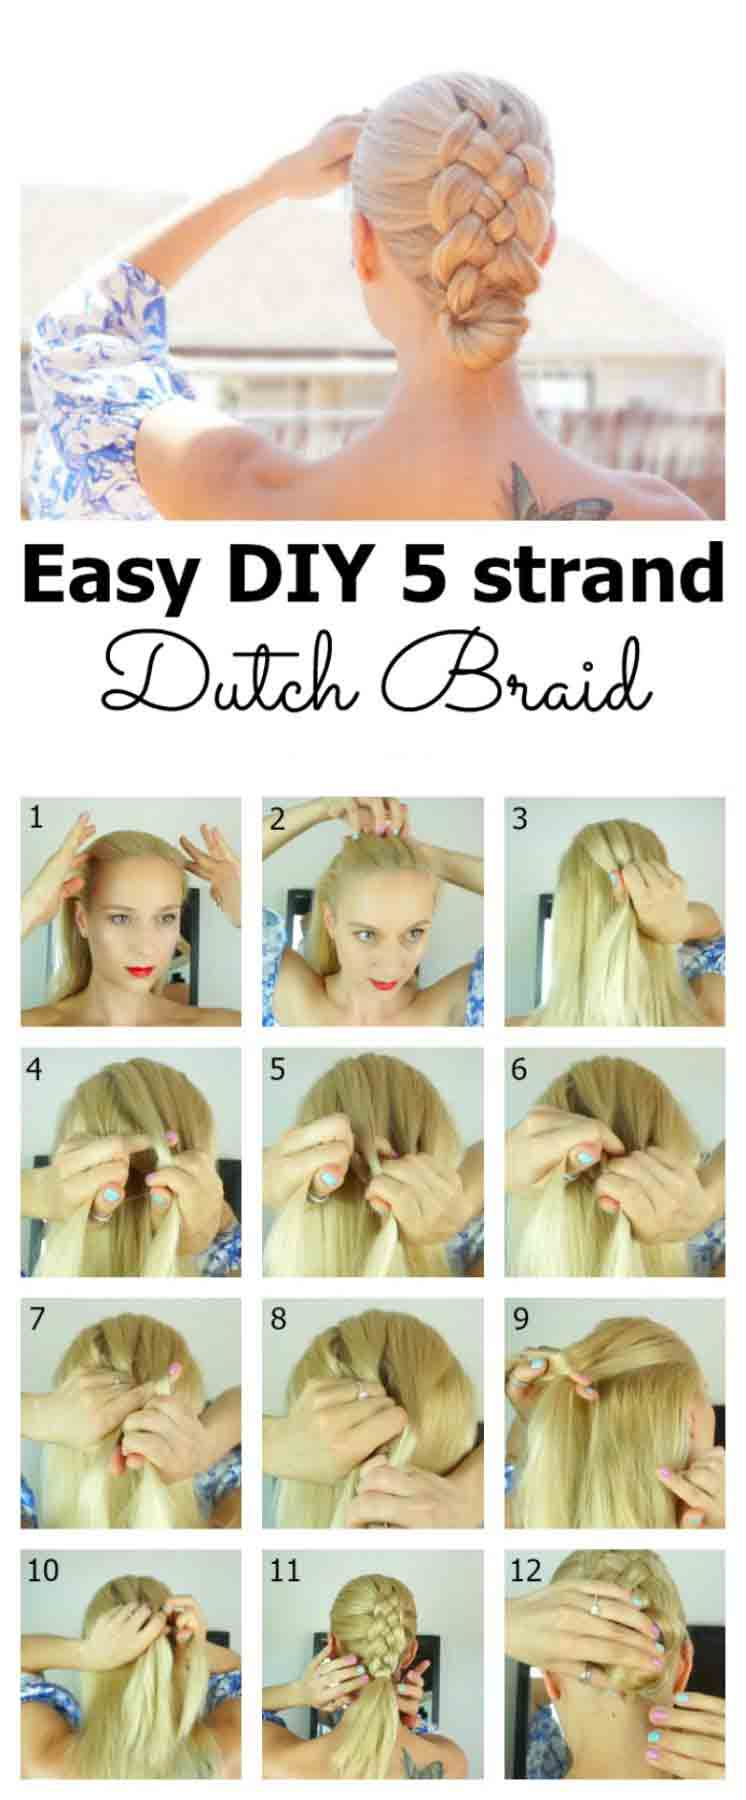 Easy diy dutch braid for Christmas for girls